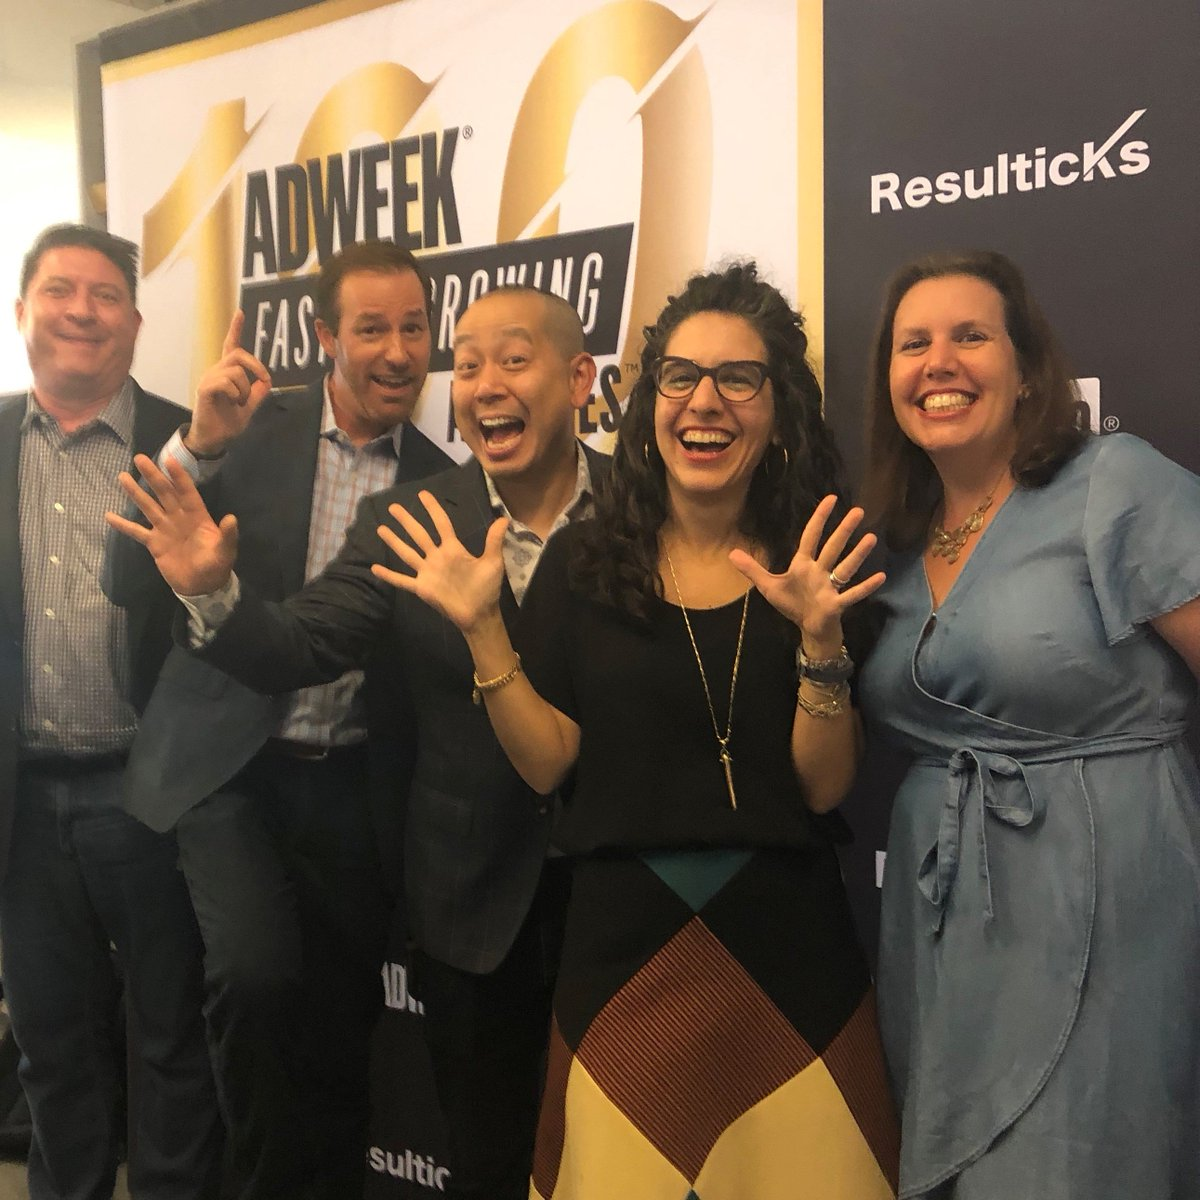 Adweek Names CMI Media to Inaugural List of 100 Fastest-Growing Agencies! #CMICompas prn.to/2nvH1CX